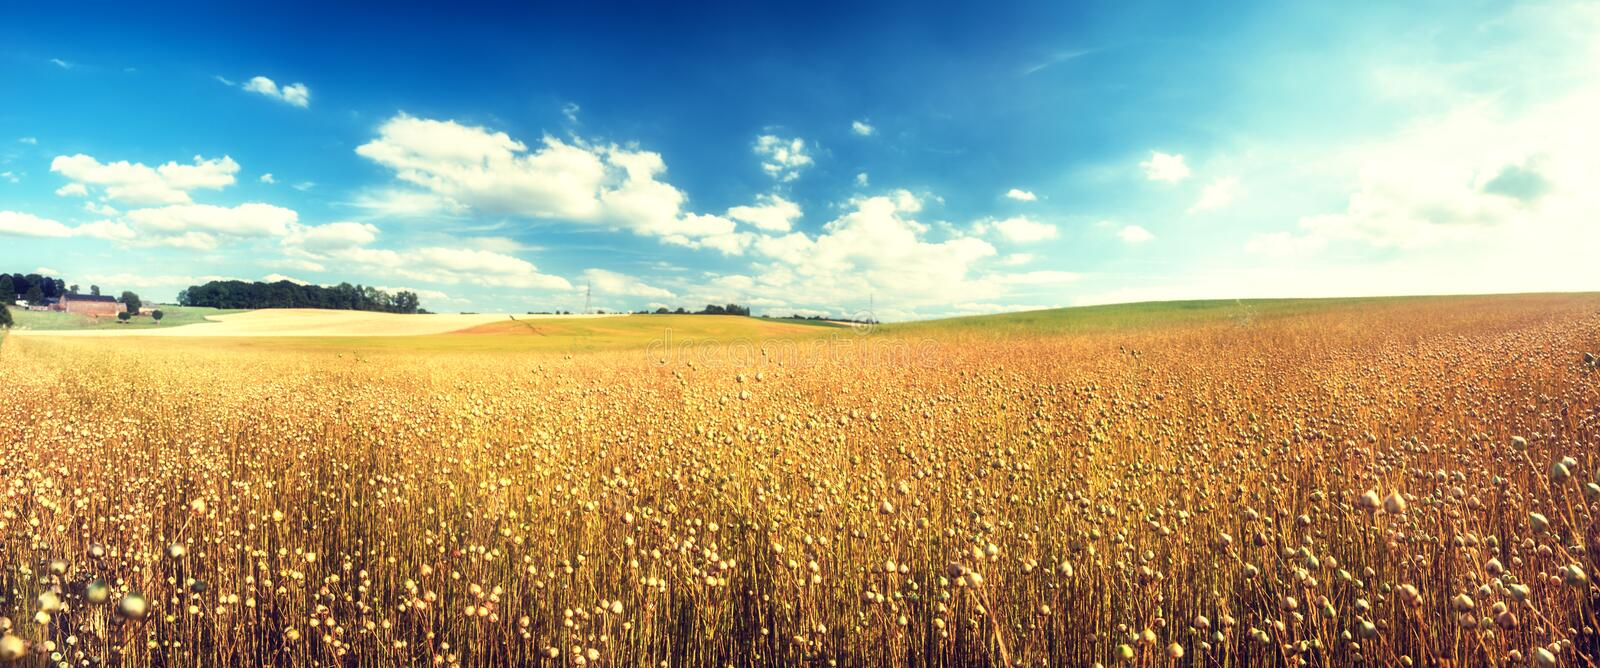 Agricultural landscape with flax seed field. Nature background royalty free stock photo